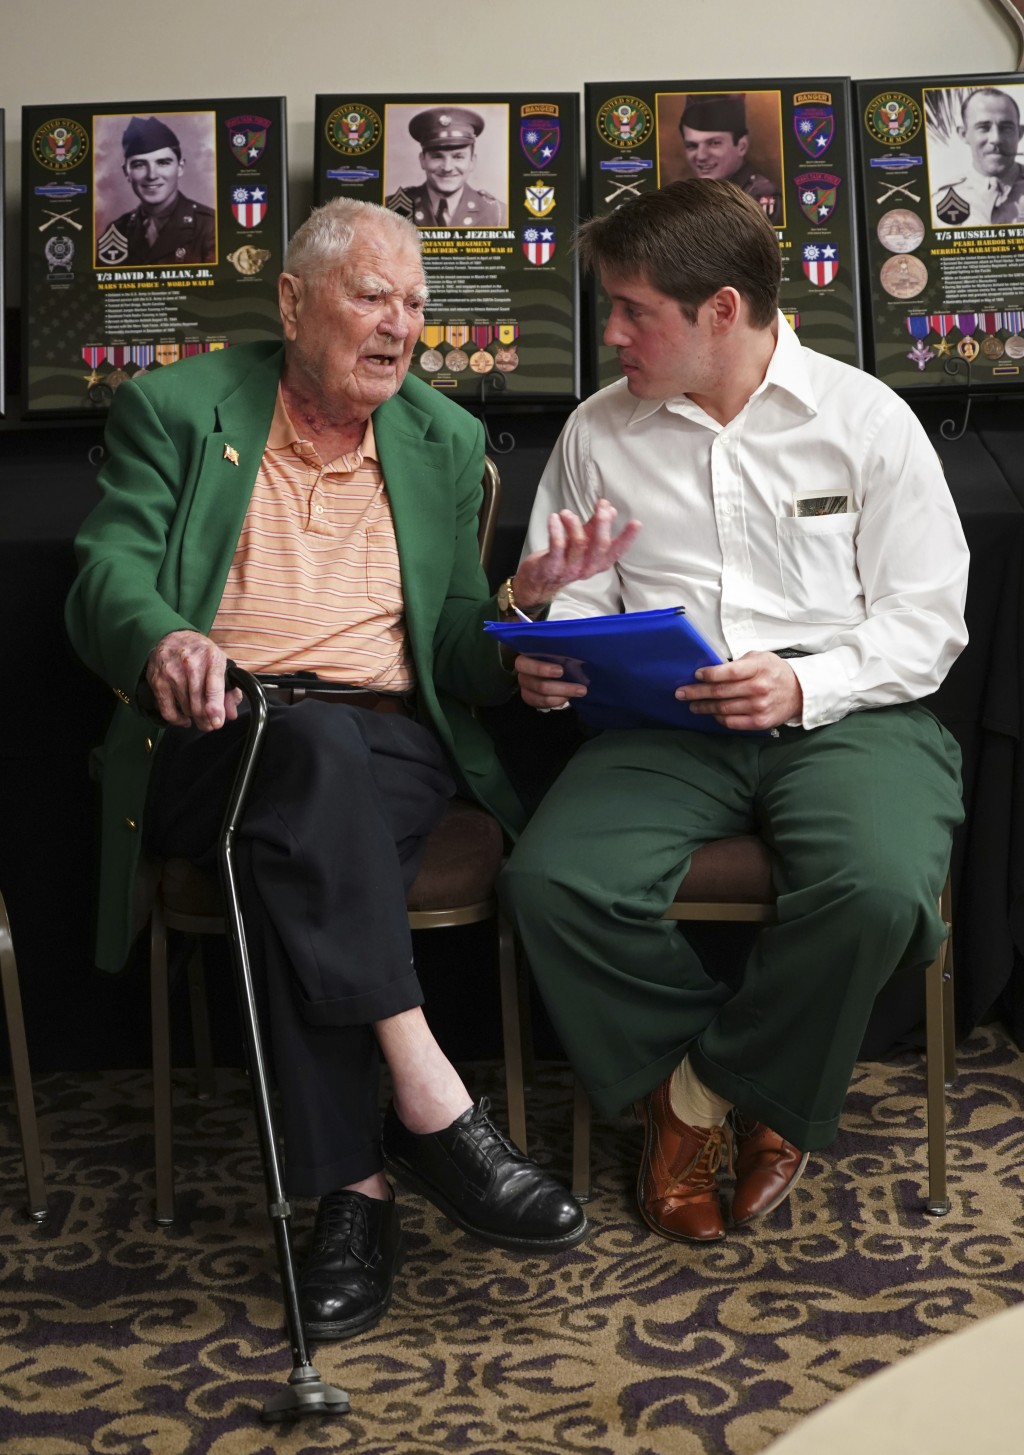 David Allan, of Rockhill SC, left, a surviving members of the famed WWII Army unit Merrill's Marauders talks with Britt Fuller, of Tallahassee Fla., w